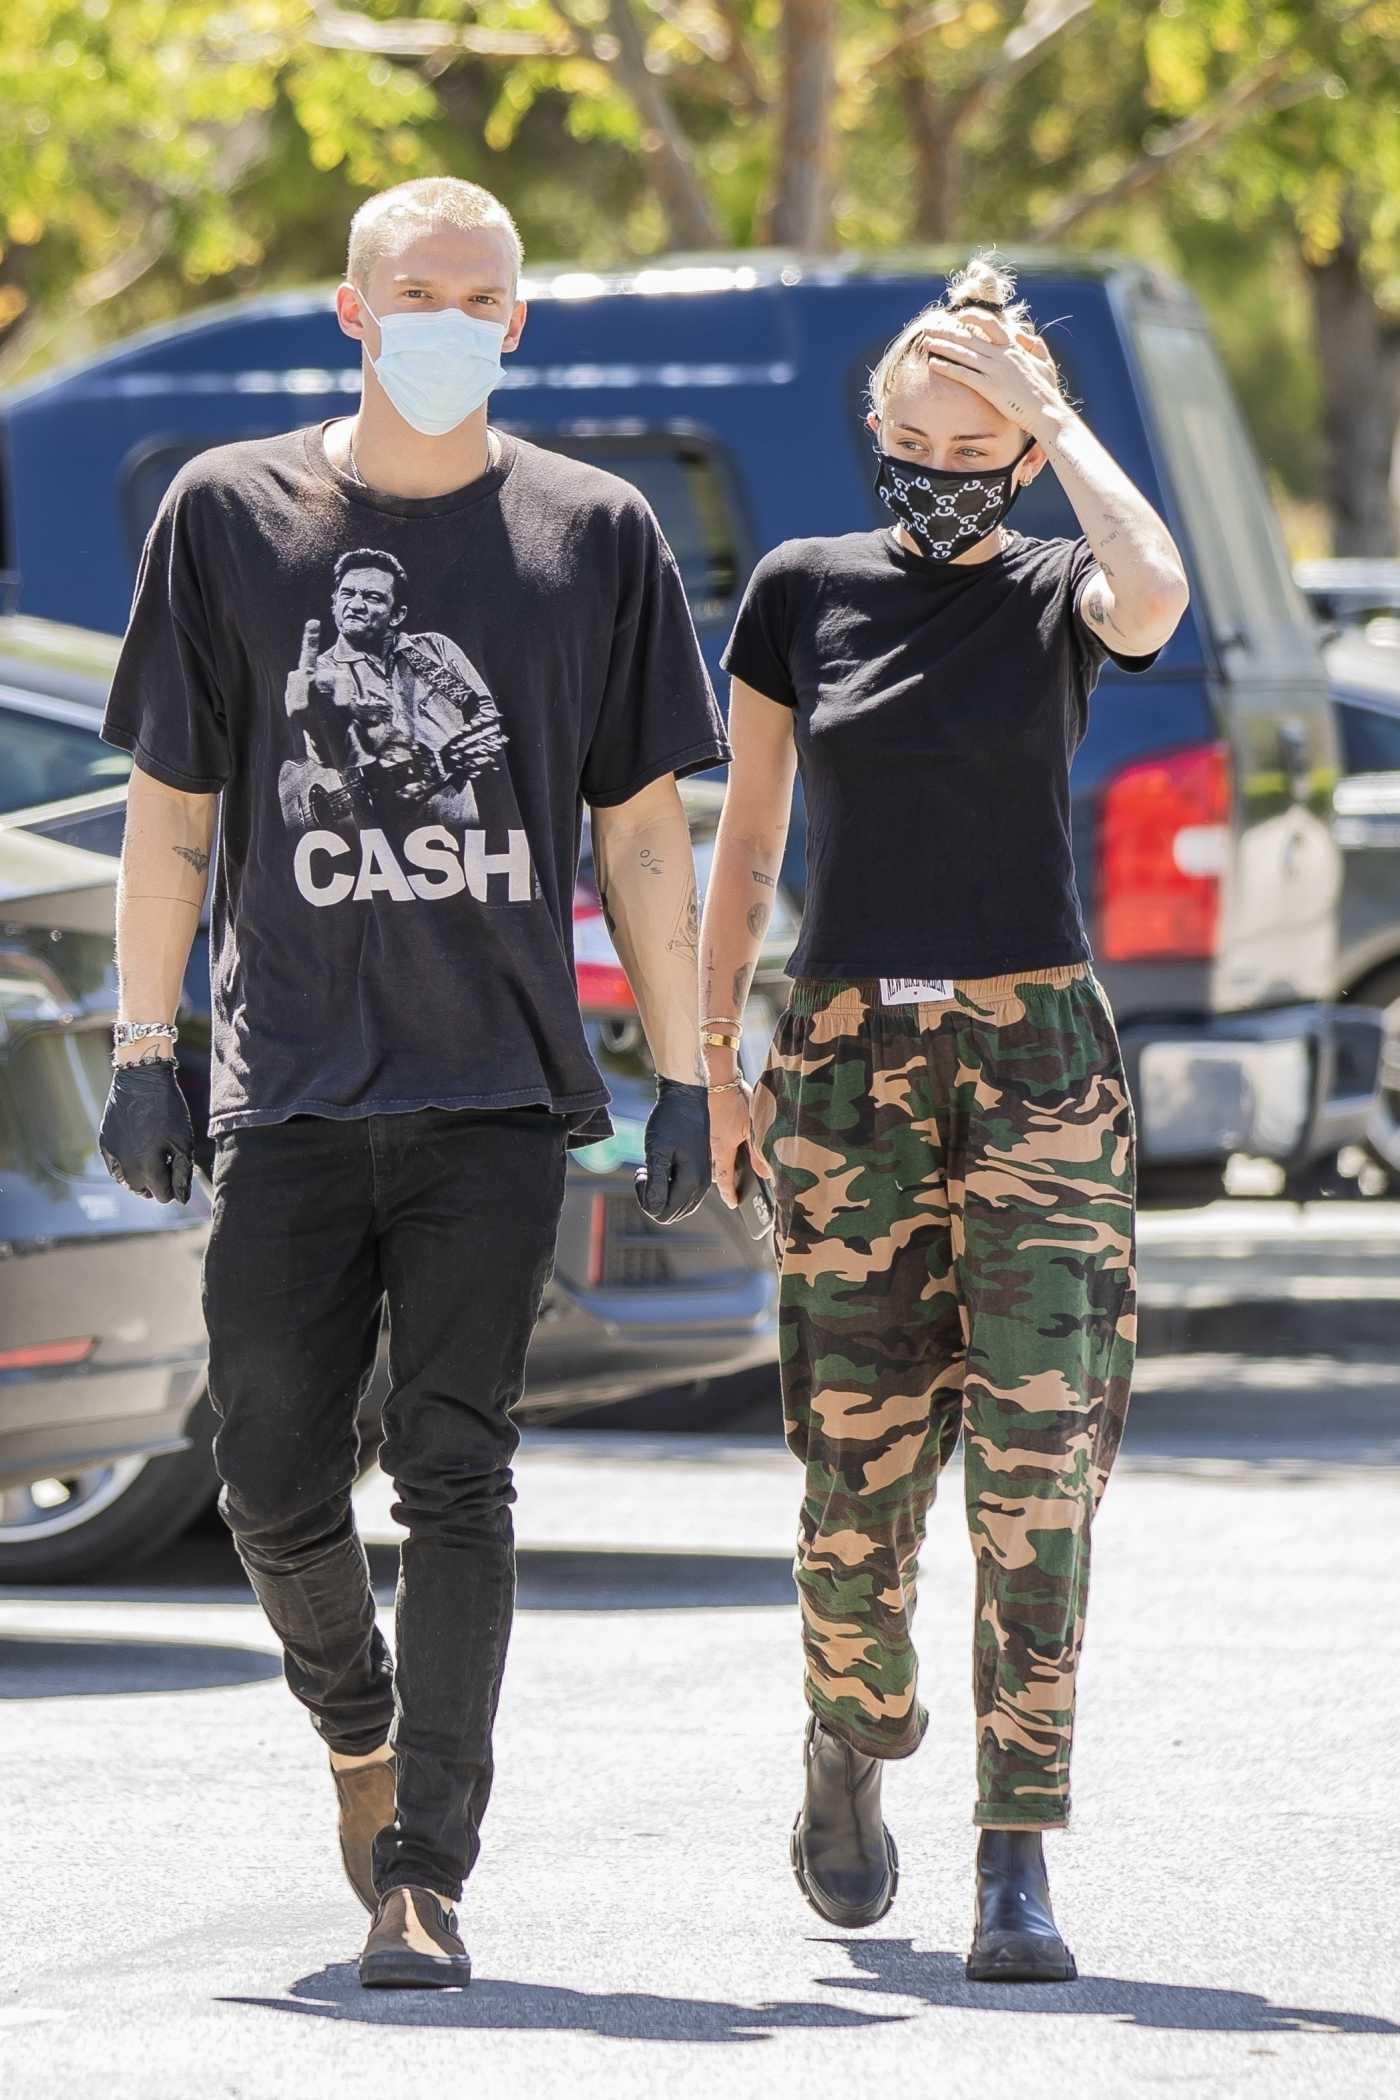 Miley Cyrus in a Black Tee Was Seen Out with Cody Simpson in Calabasas 04/23/2020